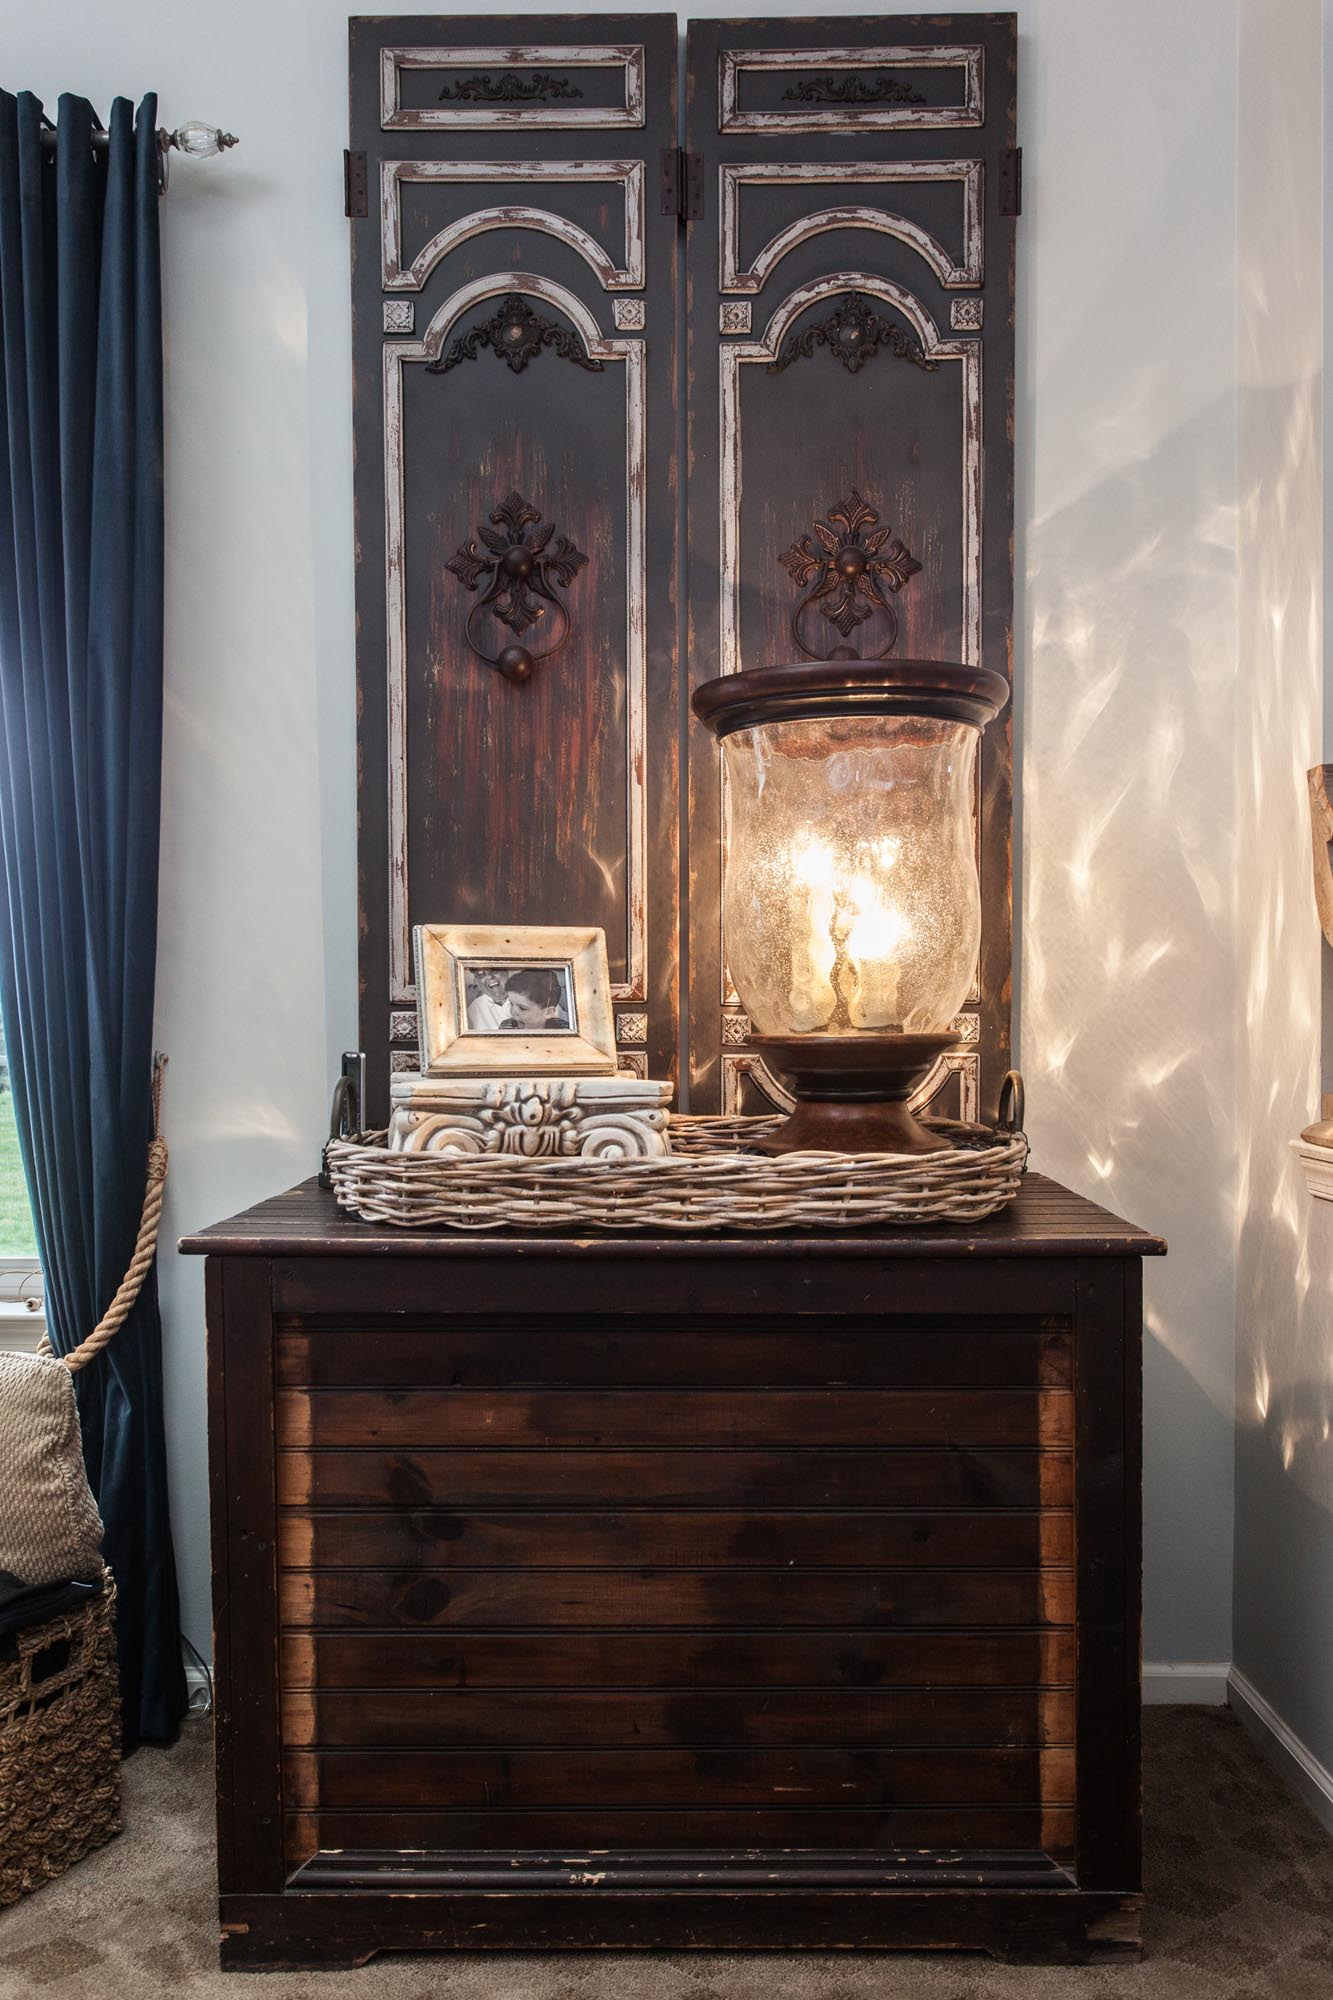 Antique wooden console with wicker basket and gas lamp